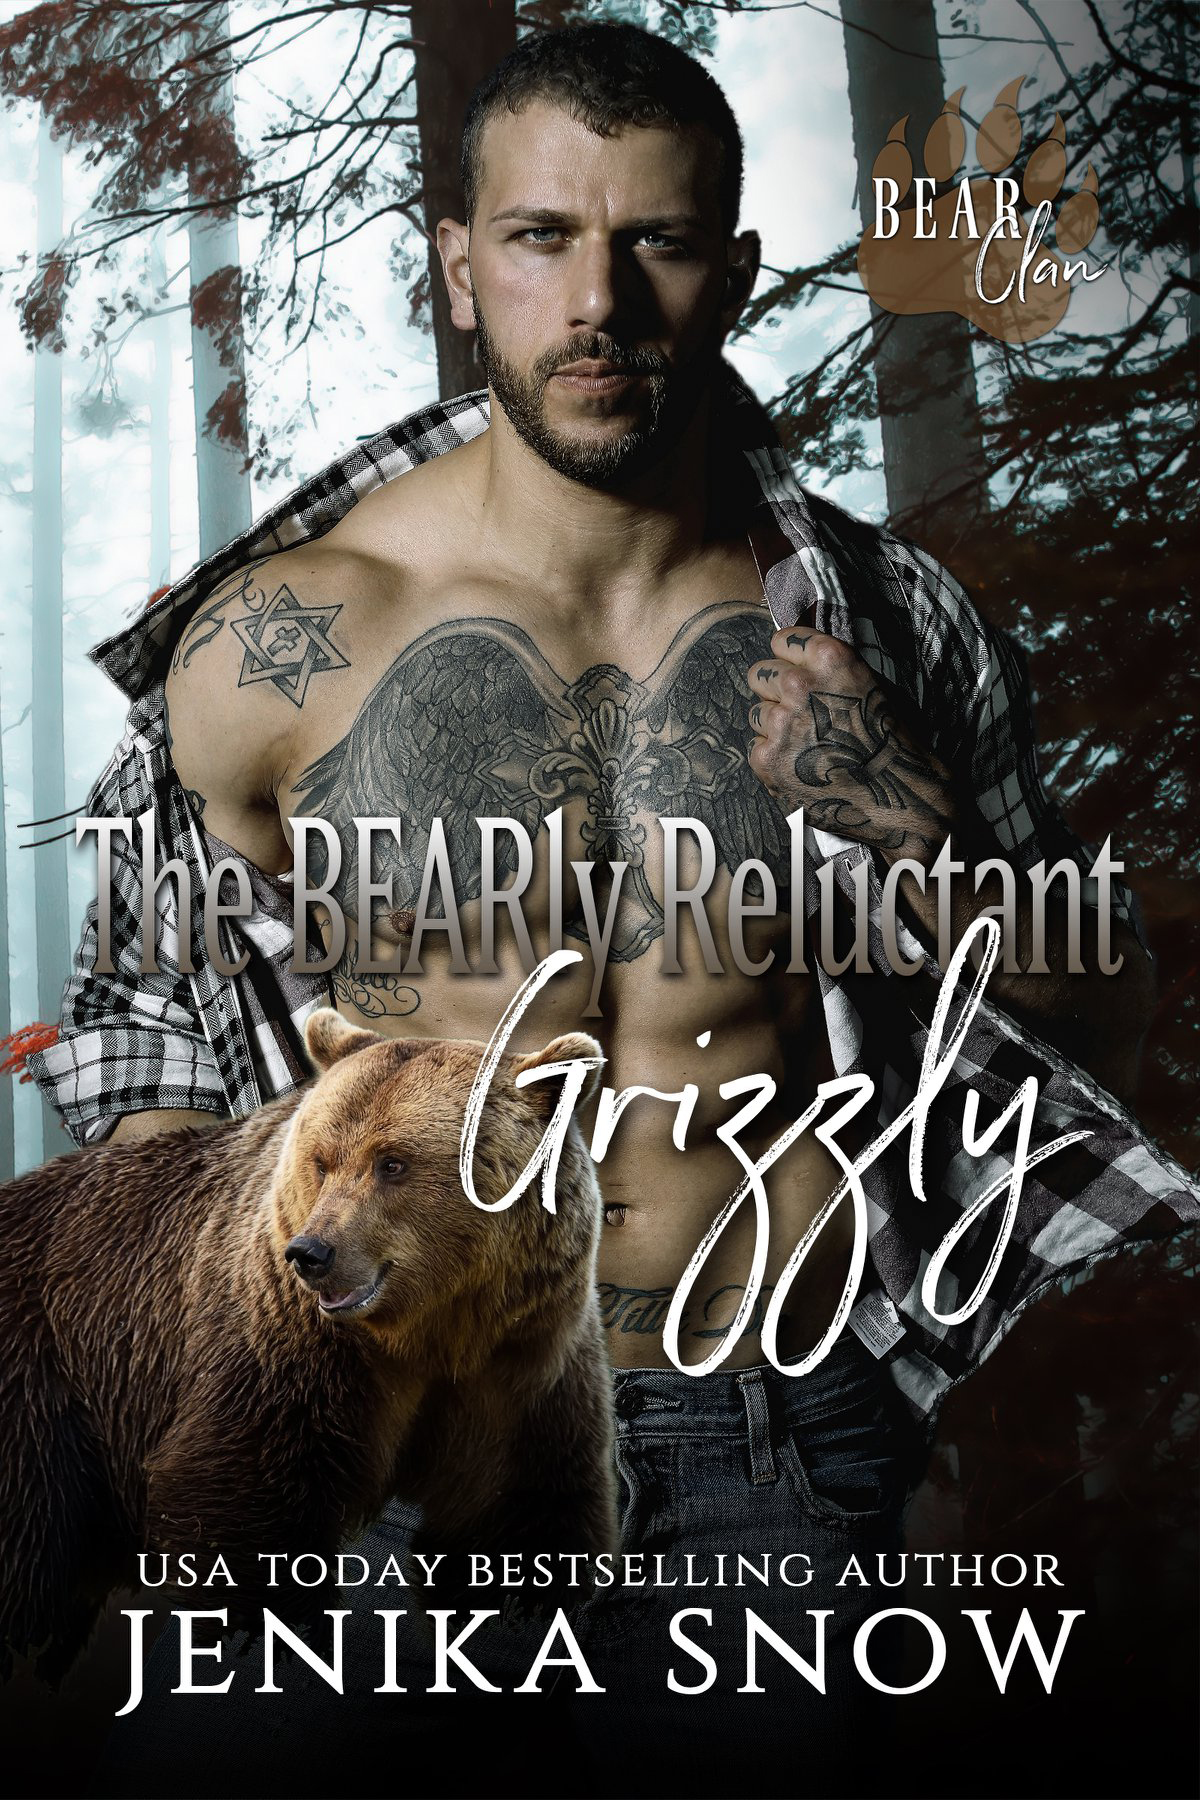 THE BEARLY RELUCTANT GRIZZLY